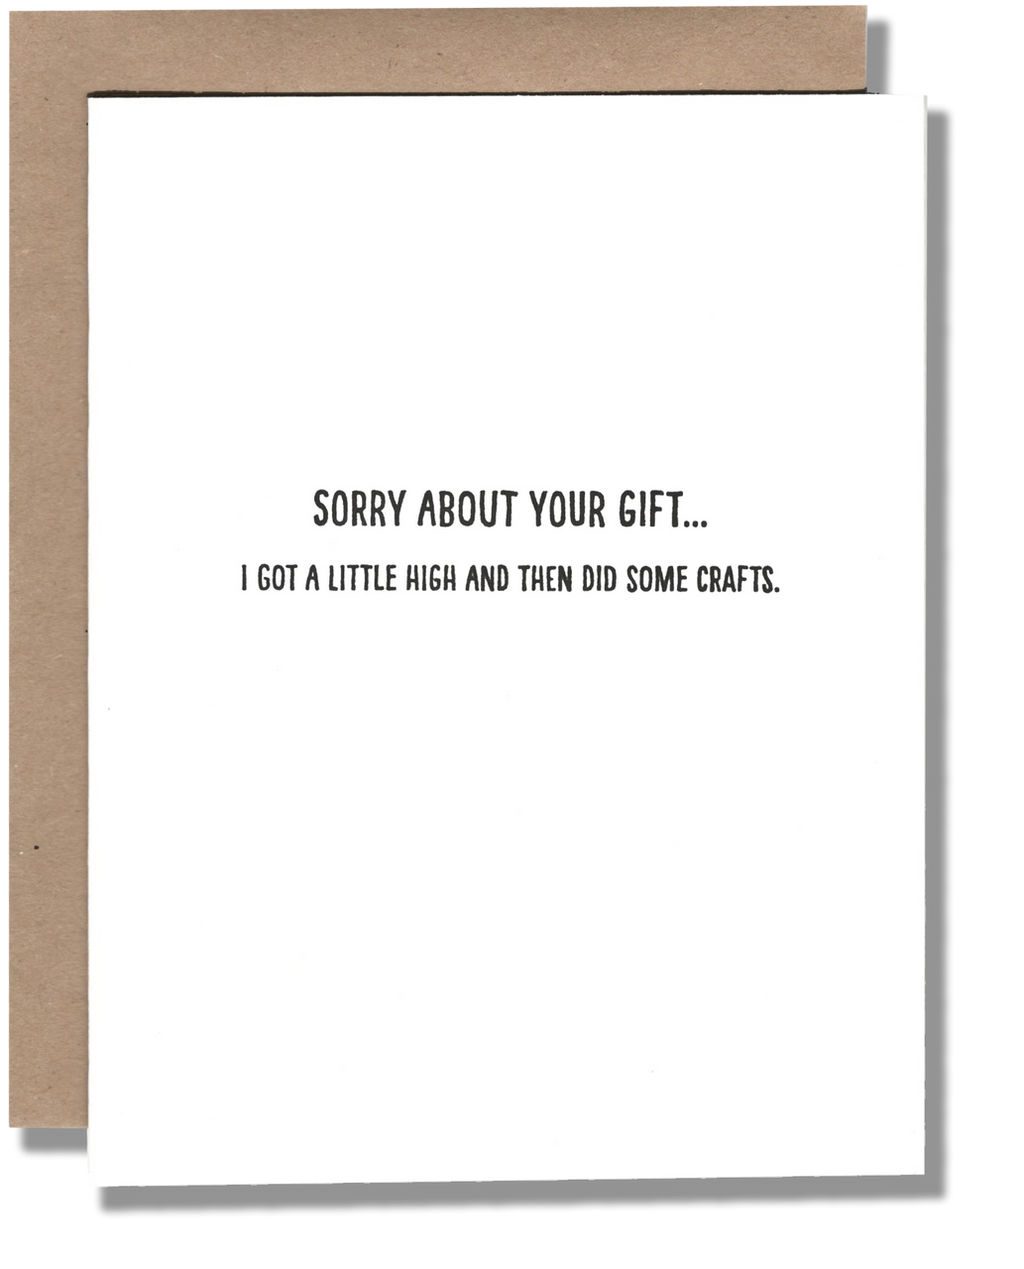 Sorry About Your Gift... Card